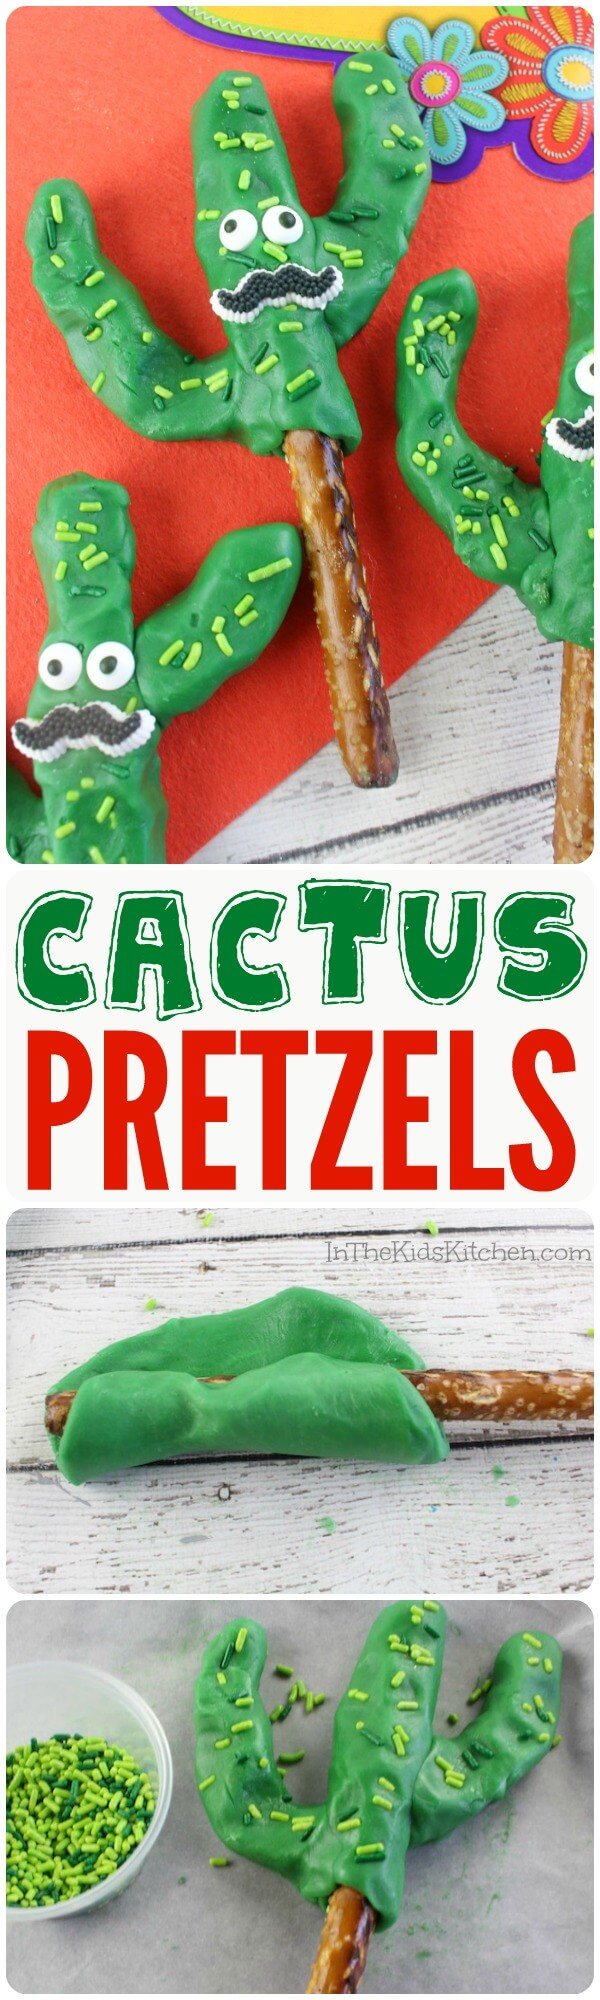 These Cactus Chocolate Covered Pretzel Rods are the cutest Cinco de Mayo or festive party dessert for both kids and adults!